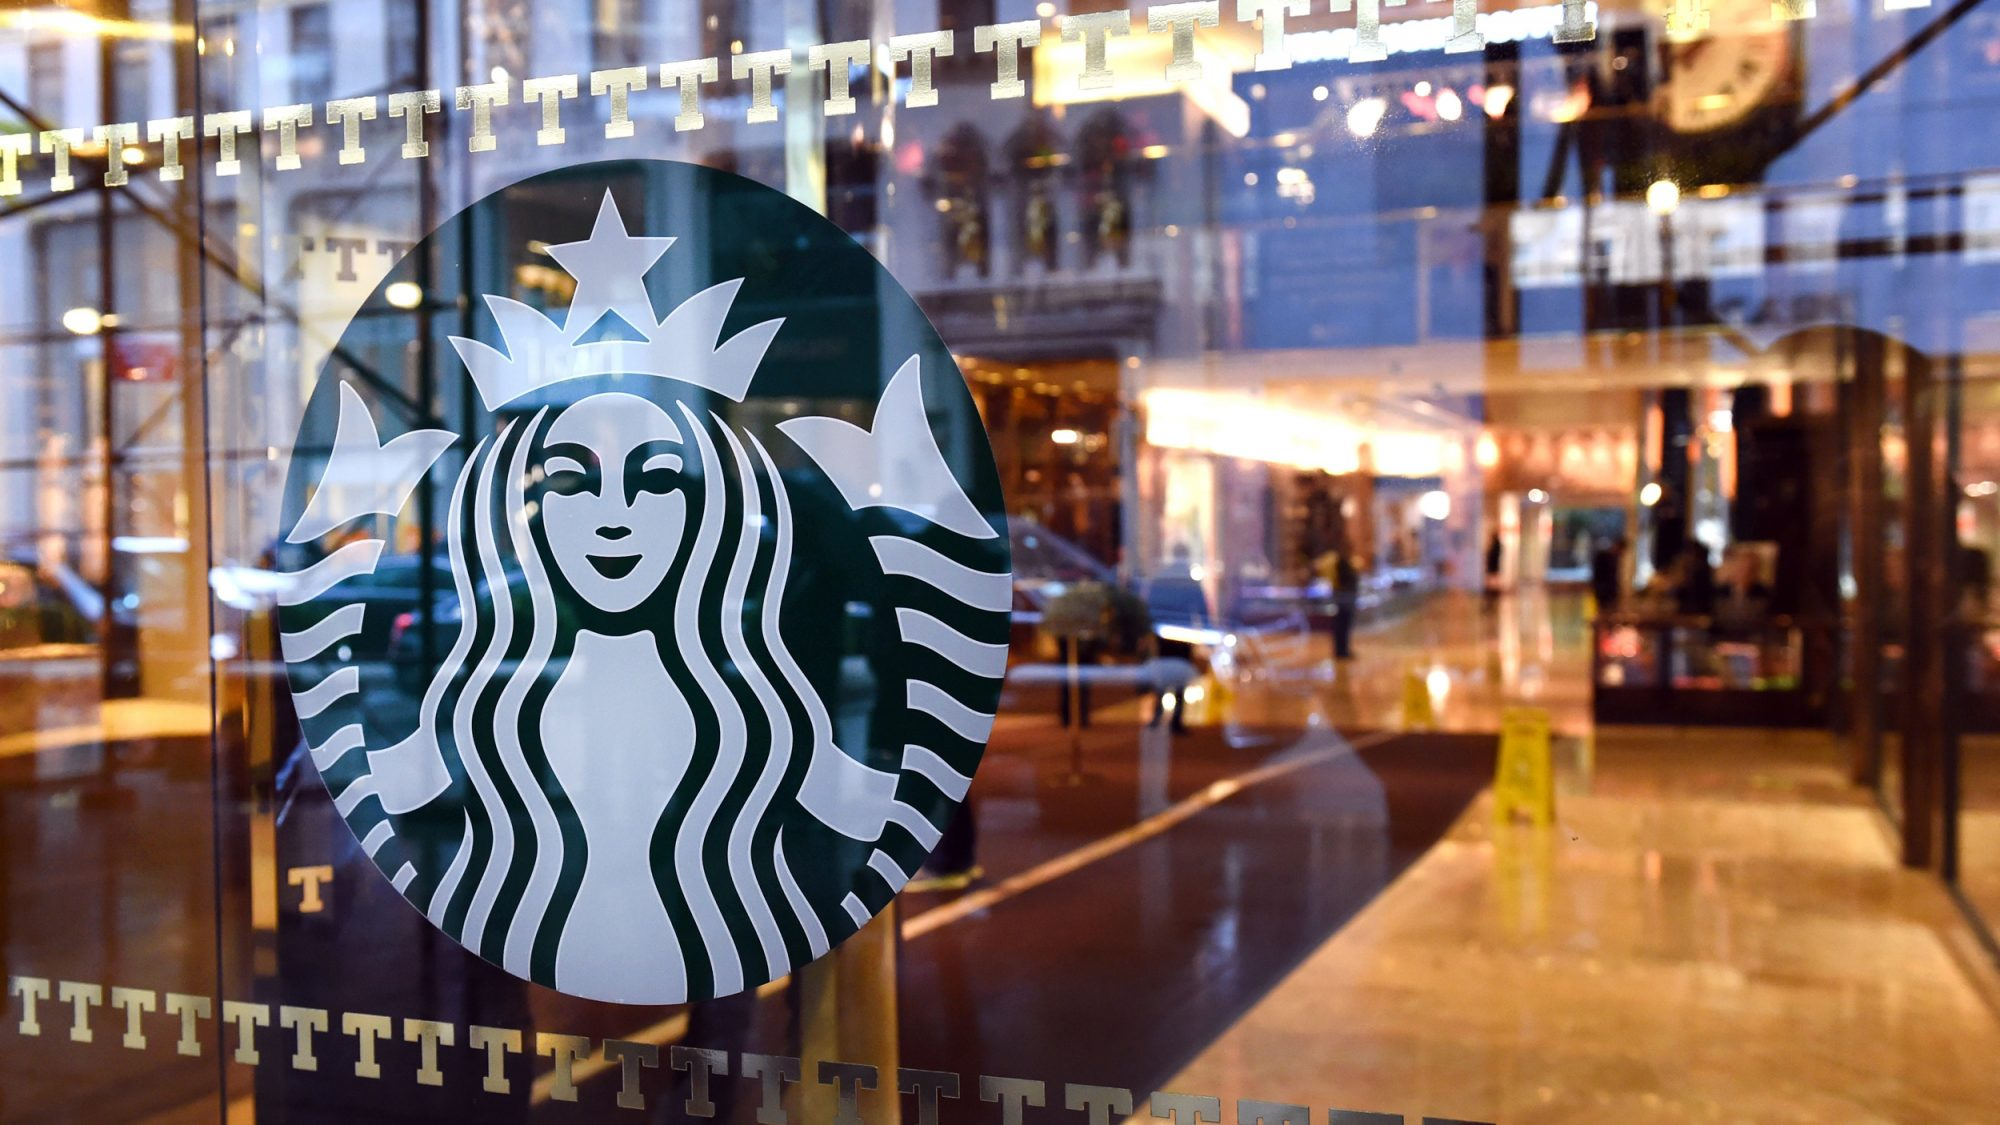 Starbucks Petition in Trump Towers